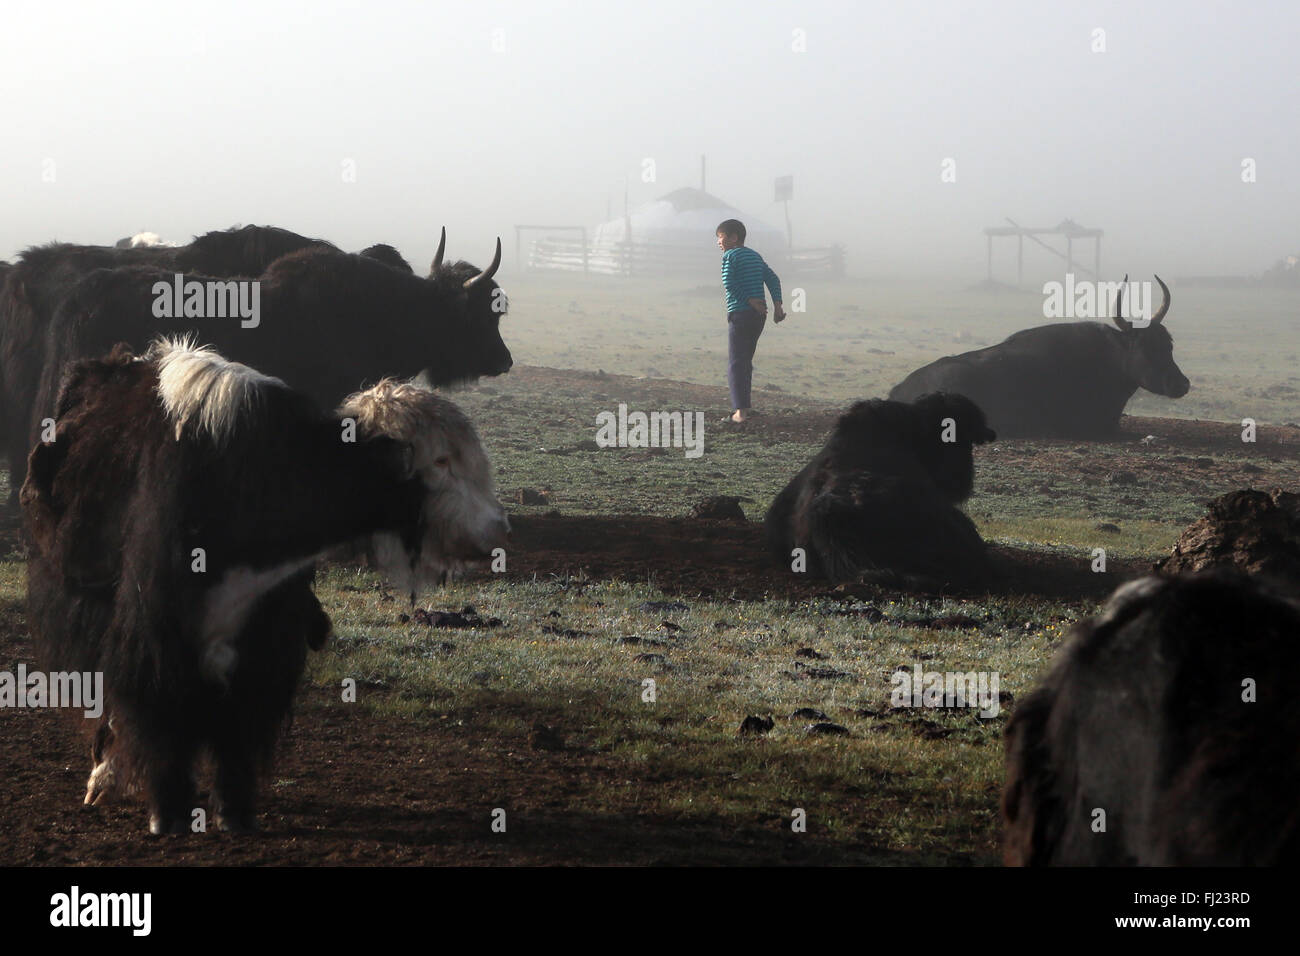 Yaks at nomads camp in Mongolia - Stock Image